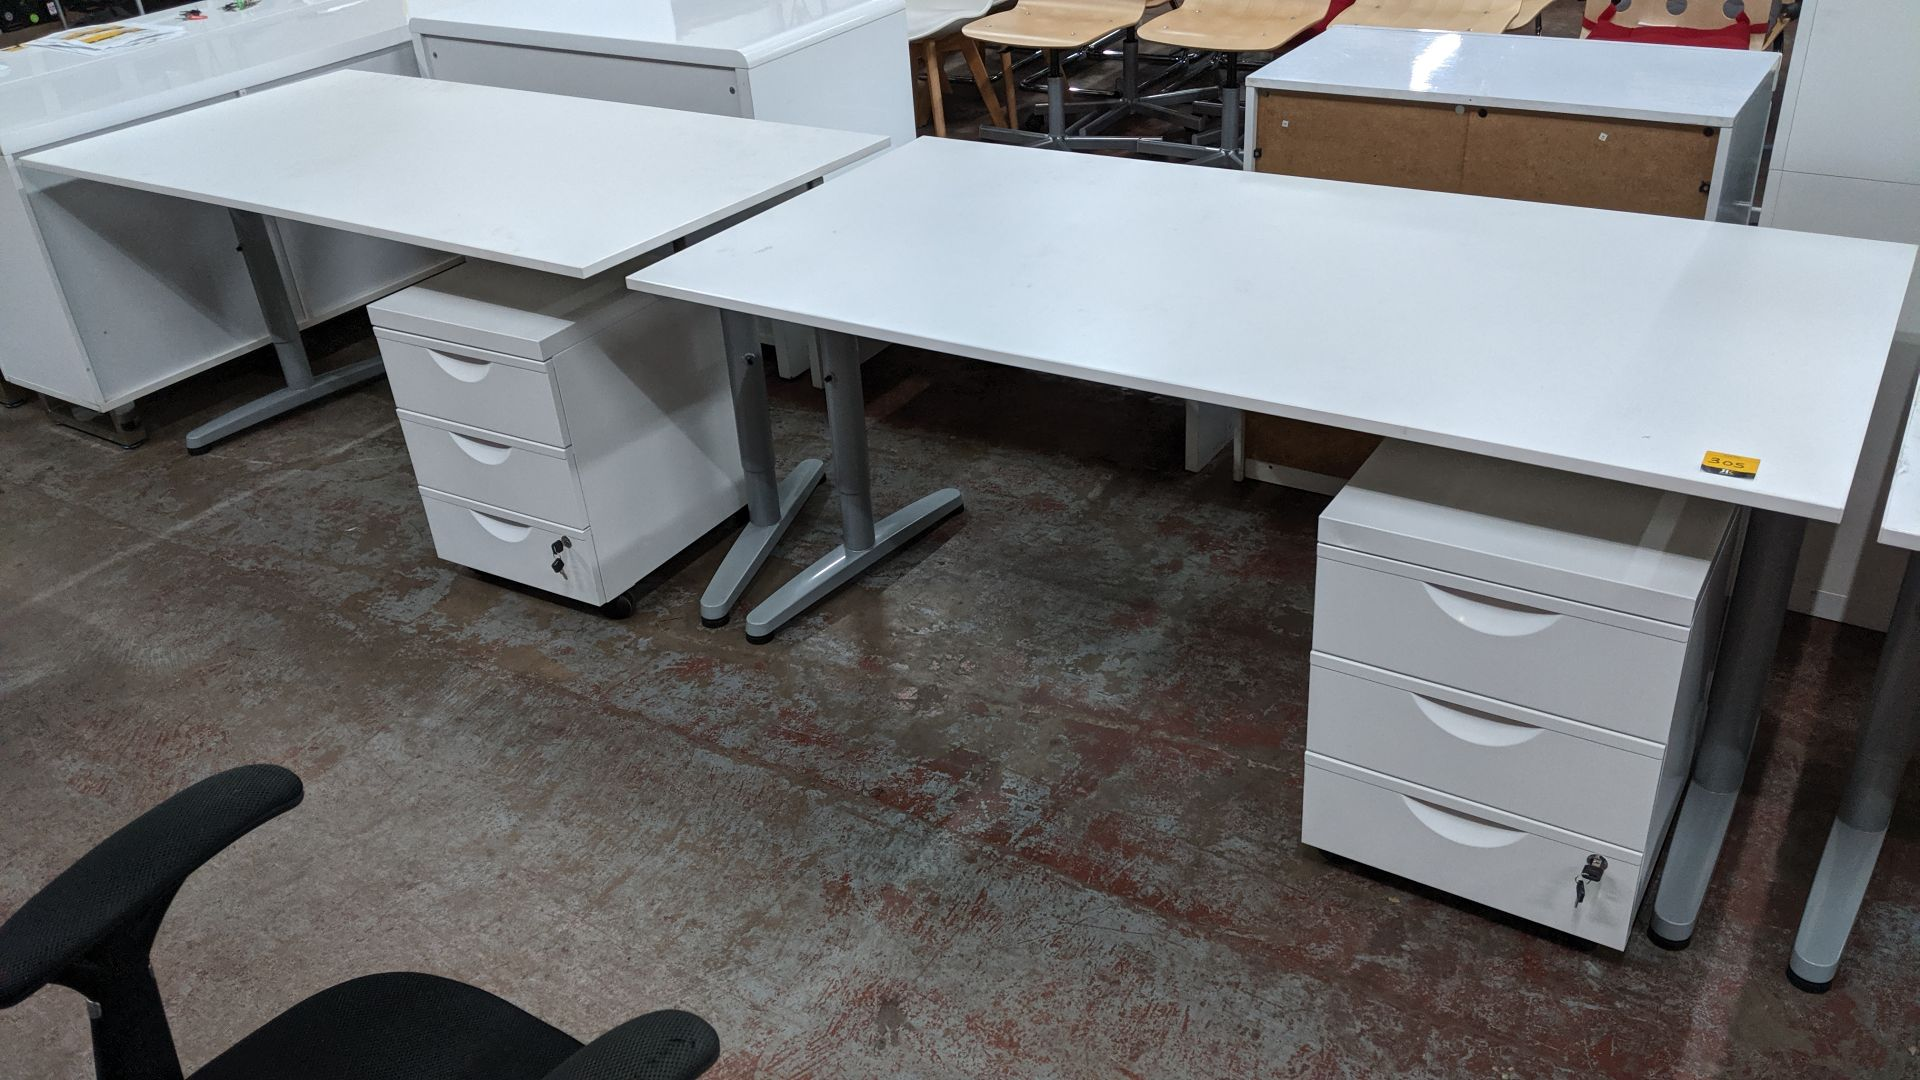 Lot 305 - 2 off matching large white tables/desks, 160 x 80cm, each with matching mobile pedestal & extendable